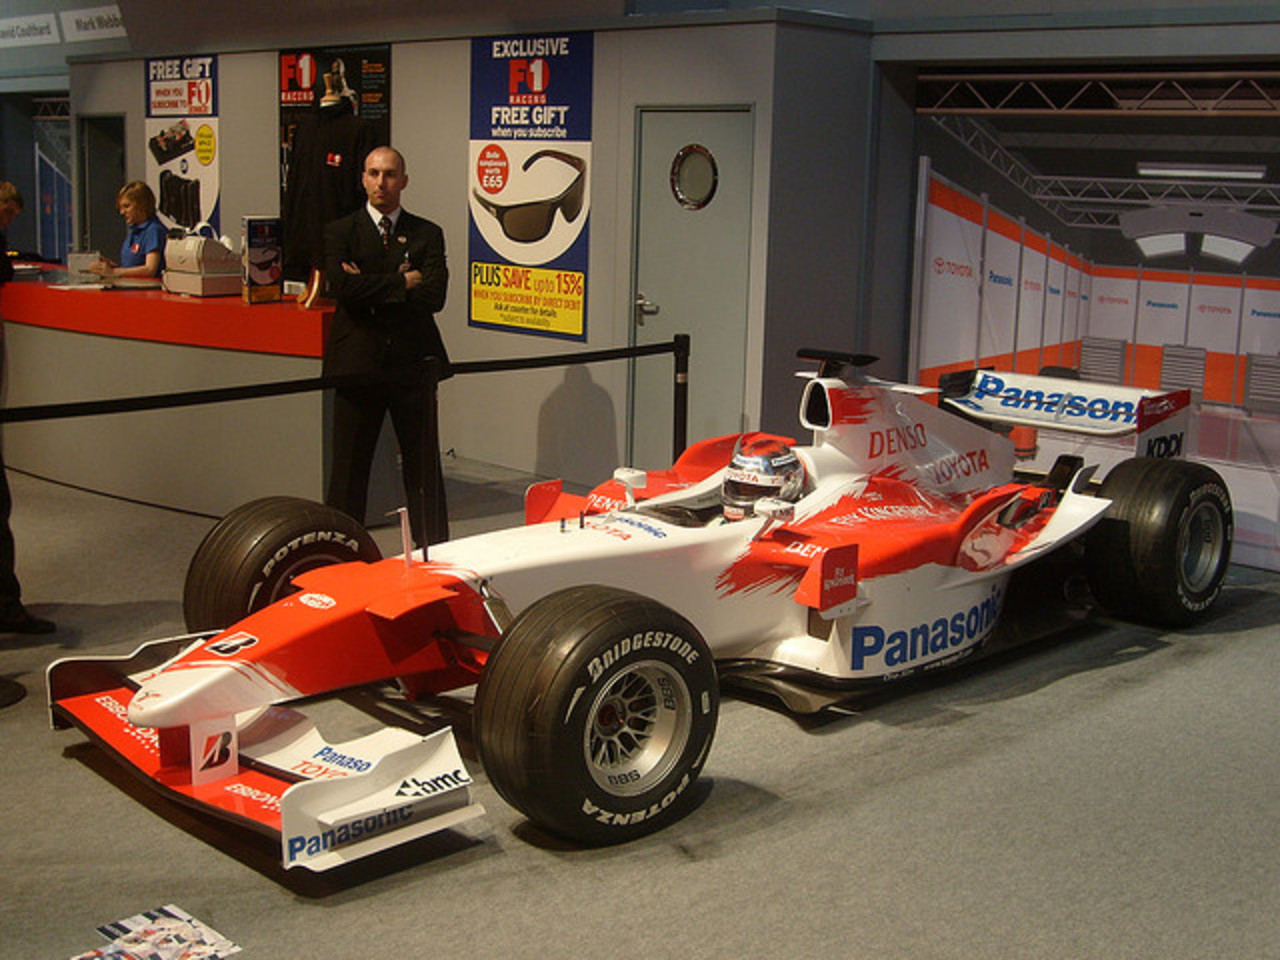 2005 Toyota TF105 | Flickr - Photo Sharing!